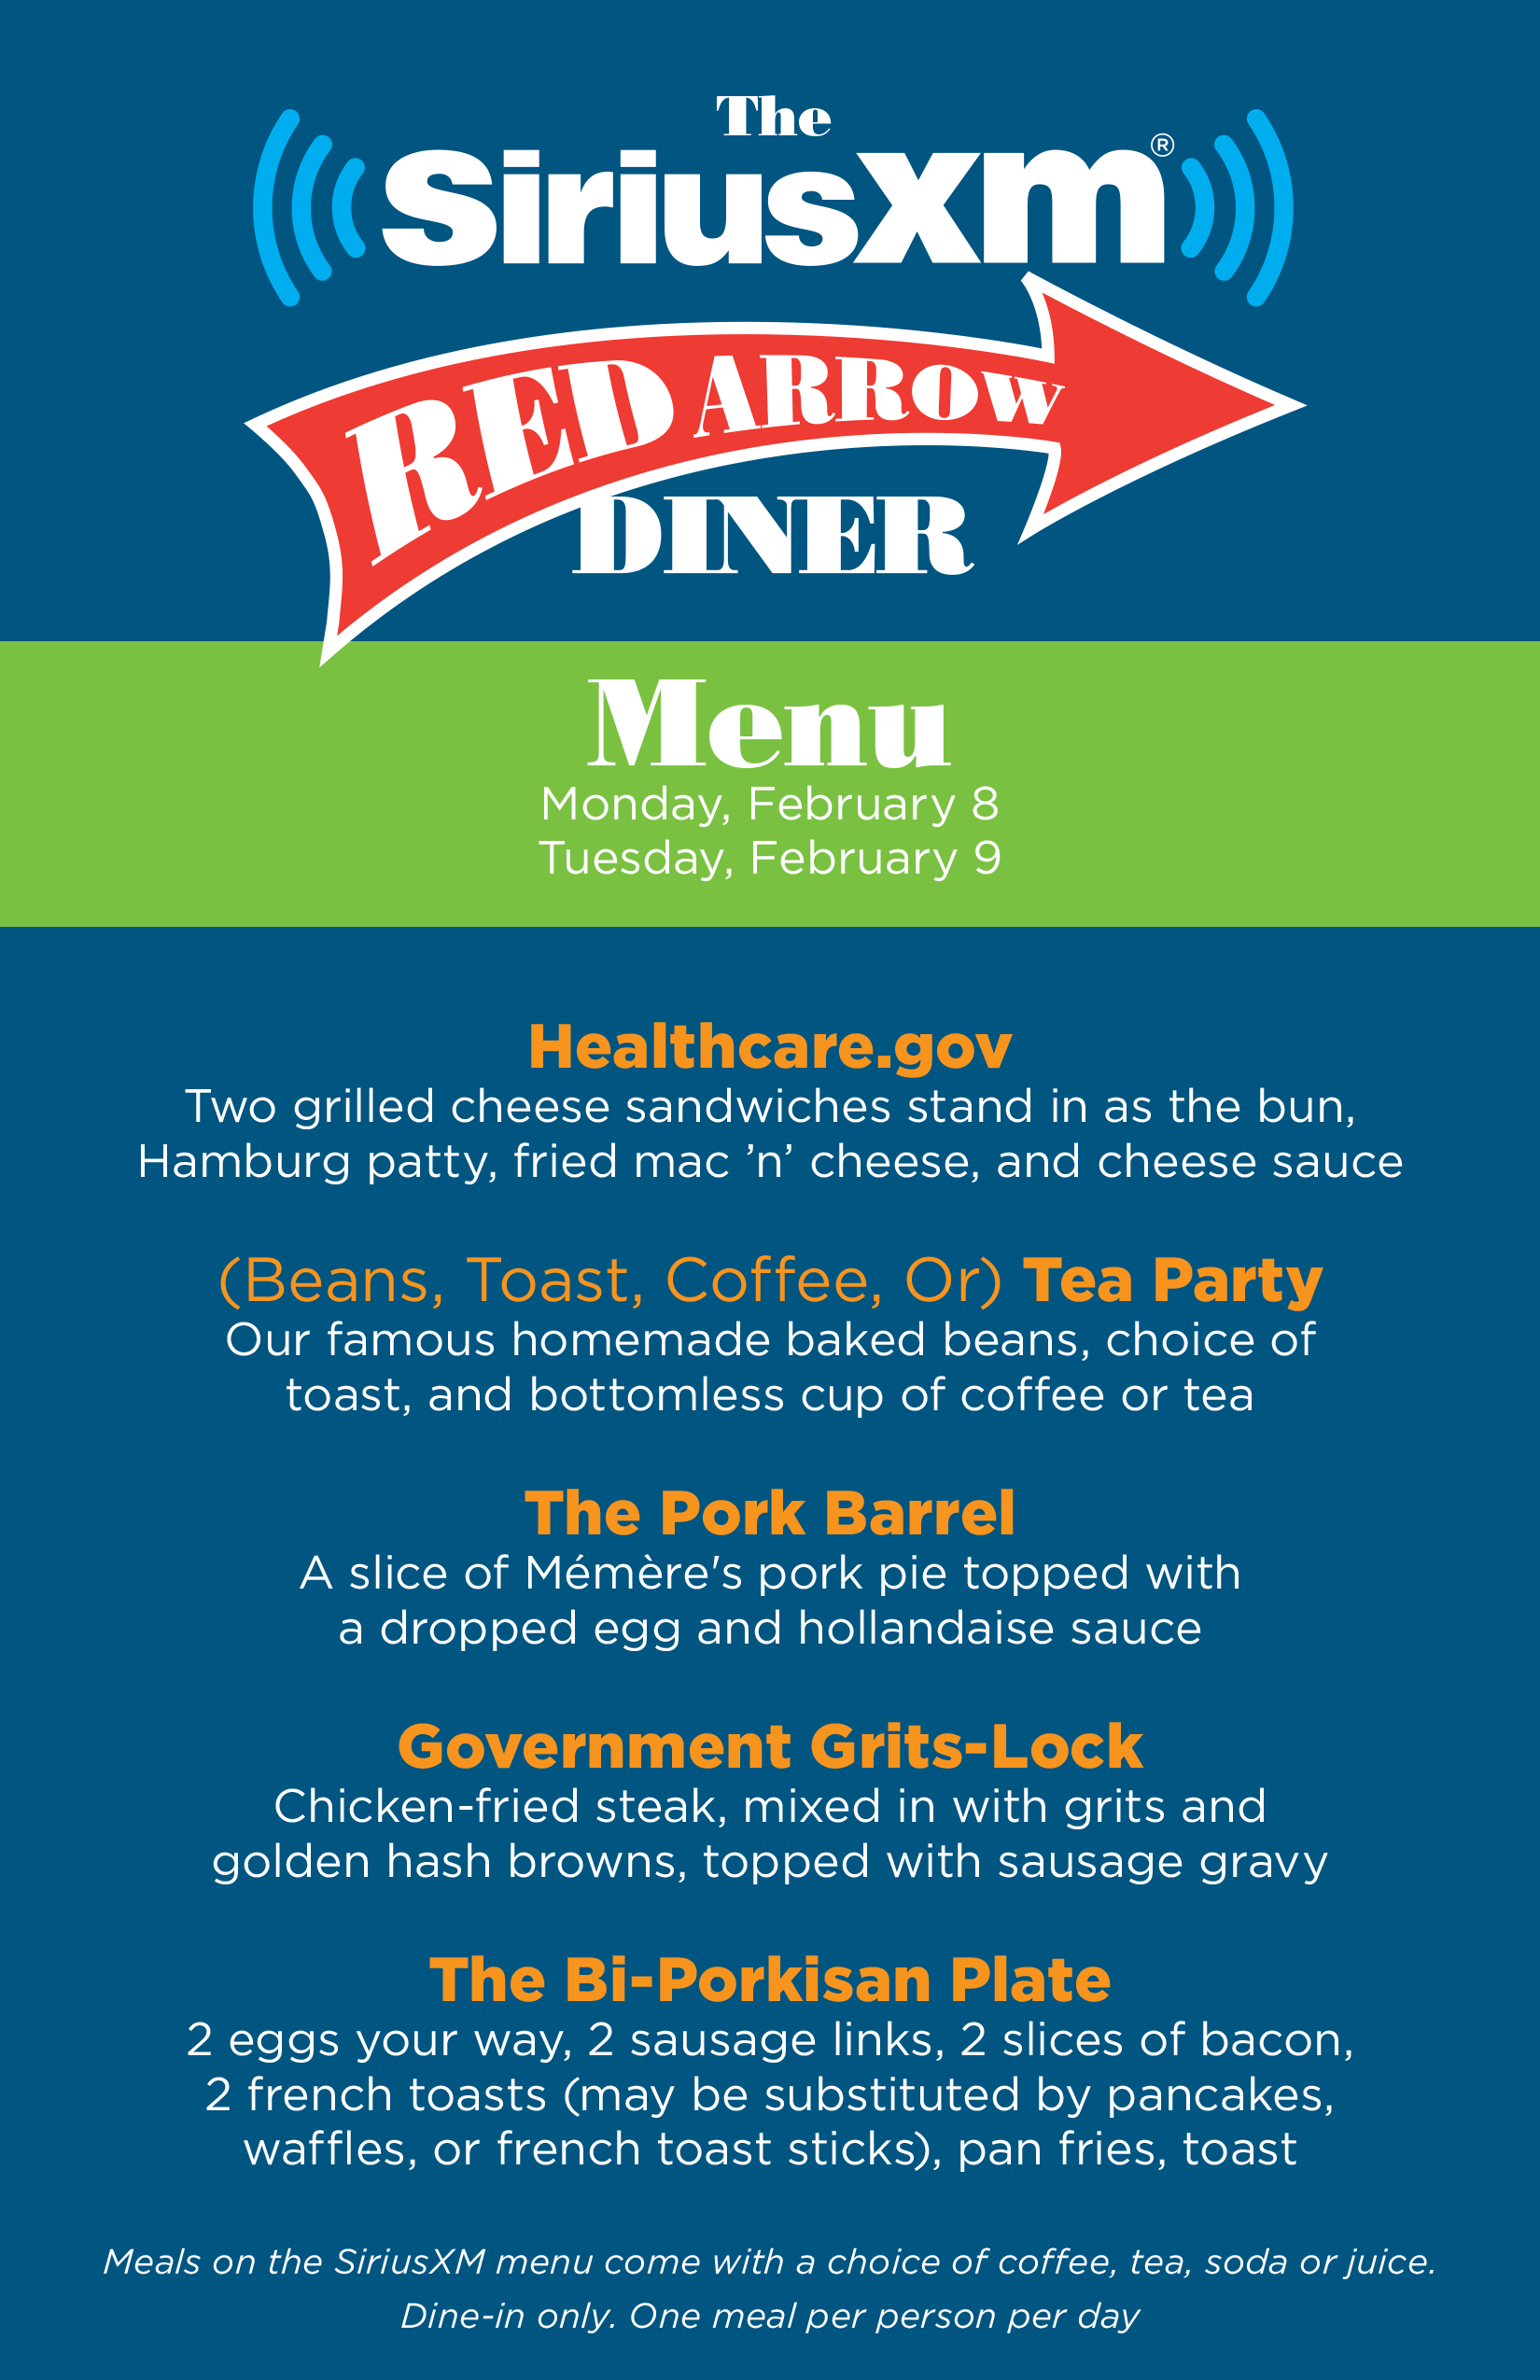 Red Arrow Diner Menu 2016